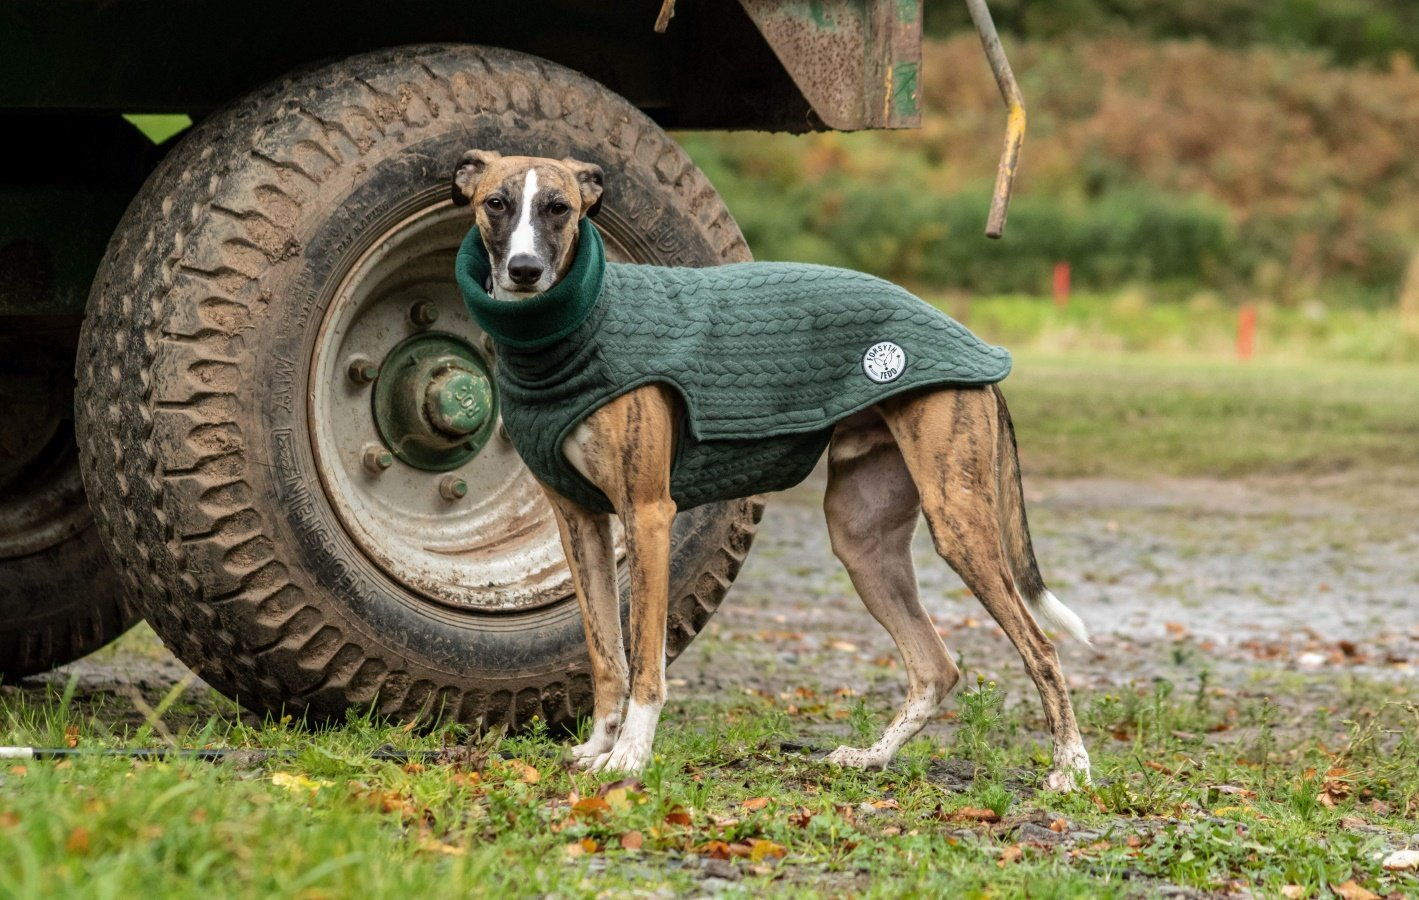 Cable Knit Dog Jumpers from Forysth and Tedd